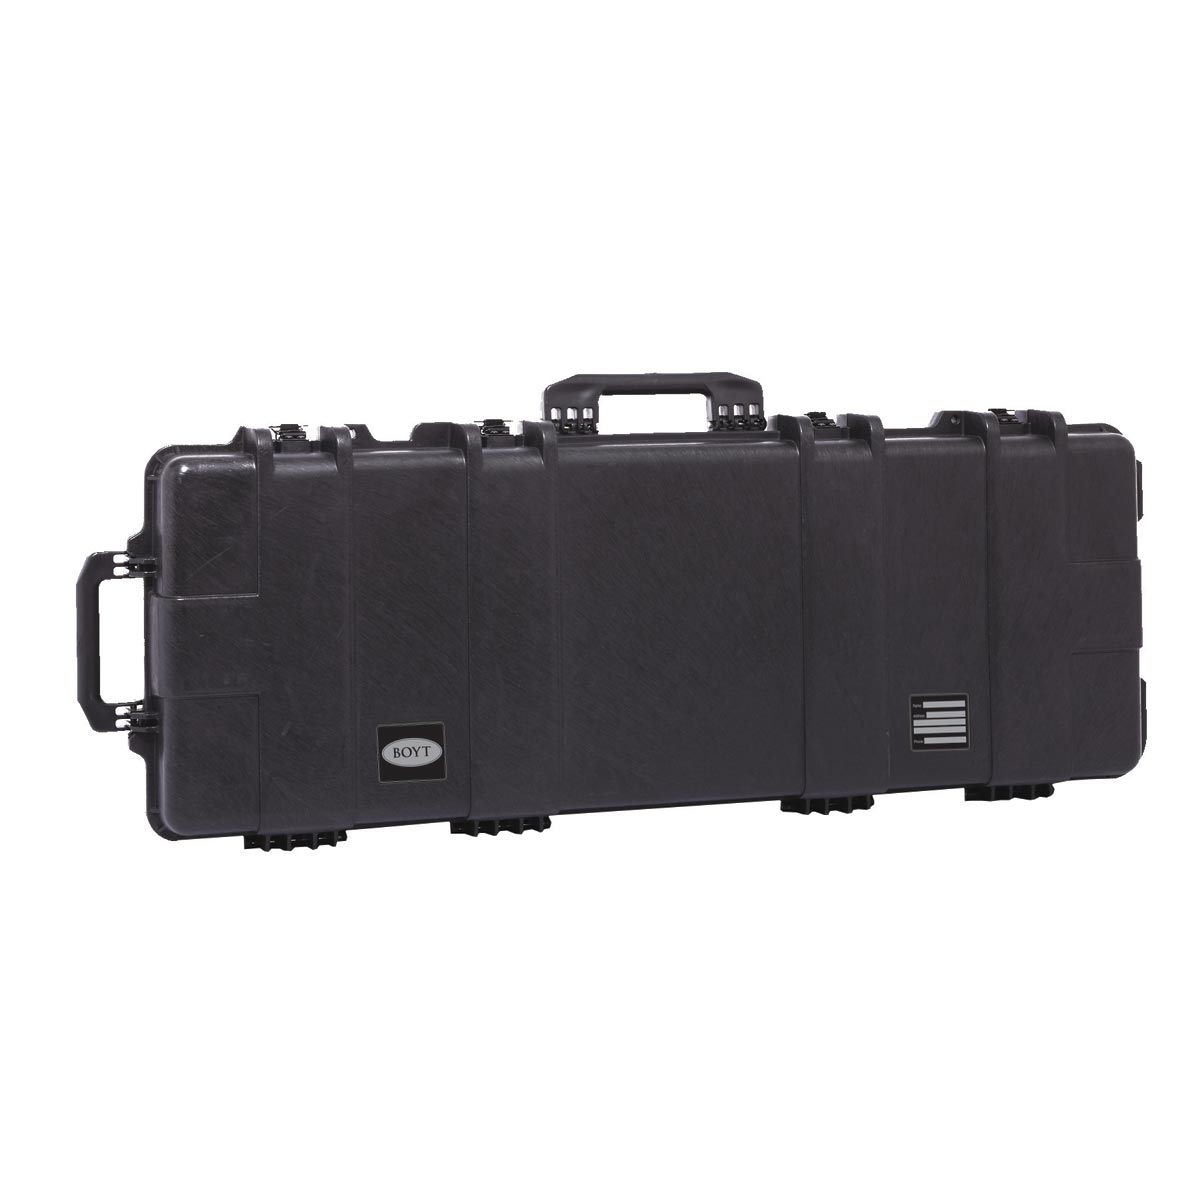 Boyt H-Series H36 Takedown Rifle/Shotgun Case - H36